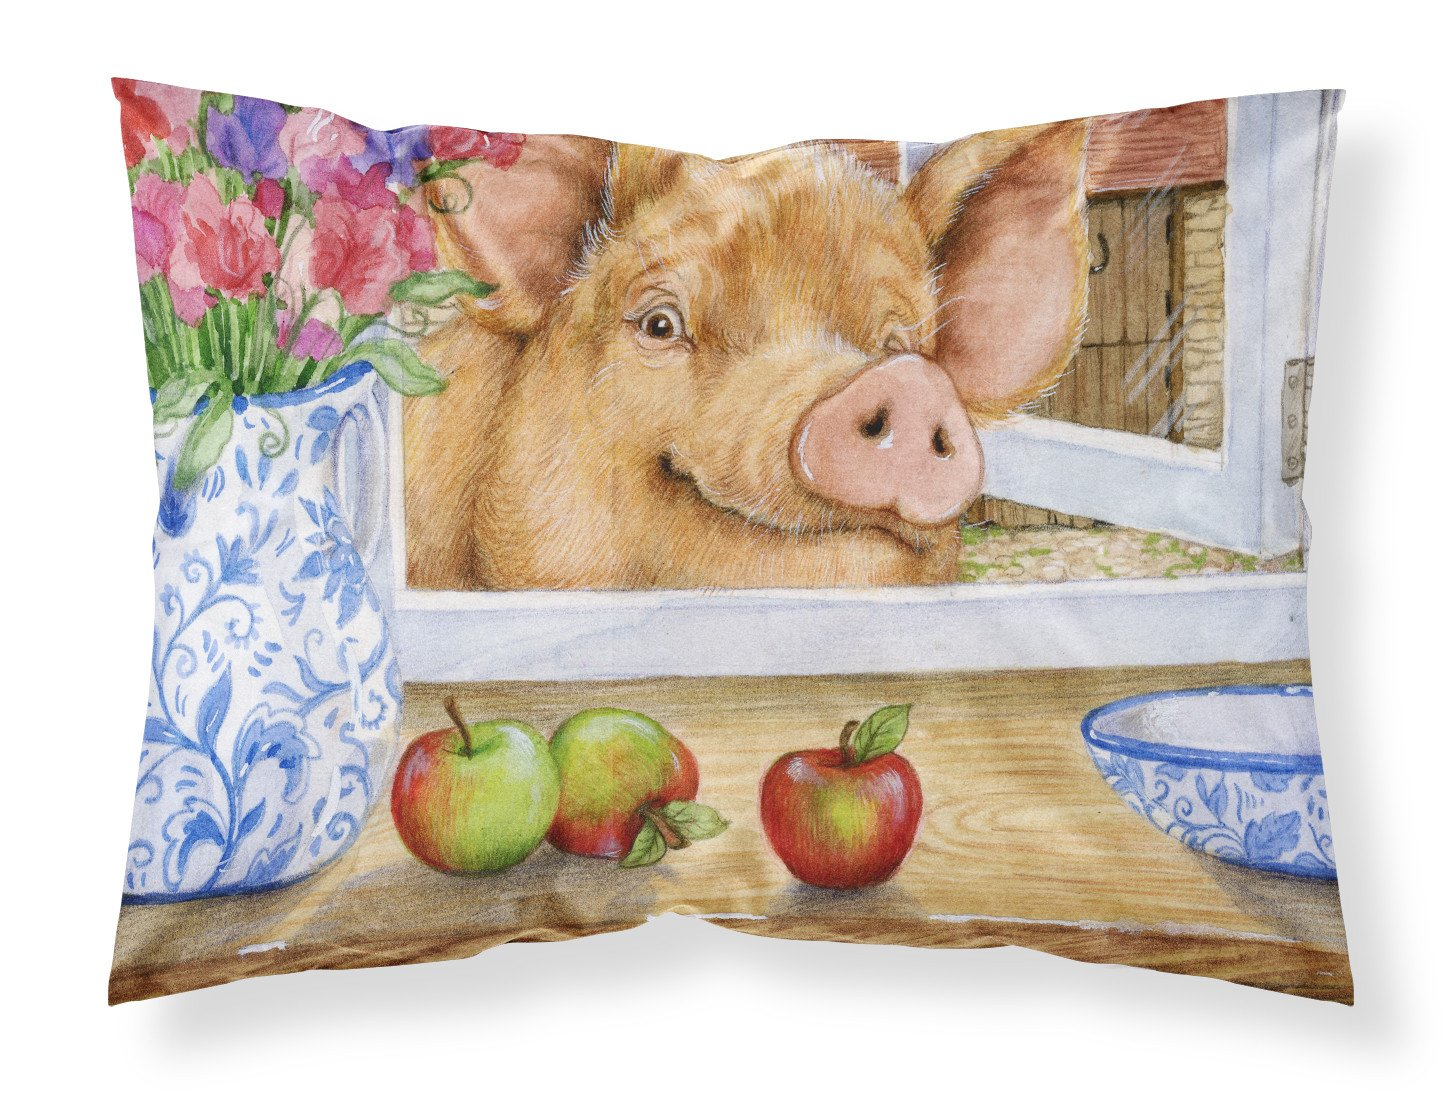 Pig trying to reach the Apple in the Window Fabric Standard Pillowcase CDCO0352PILLOWCASE by Caroline's Treasures